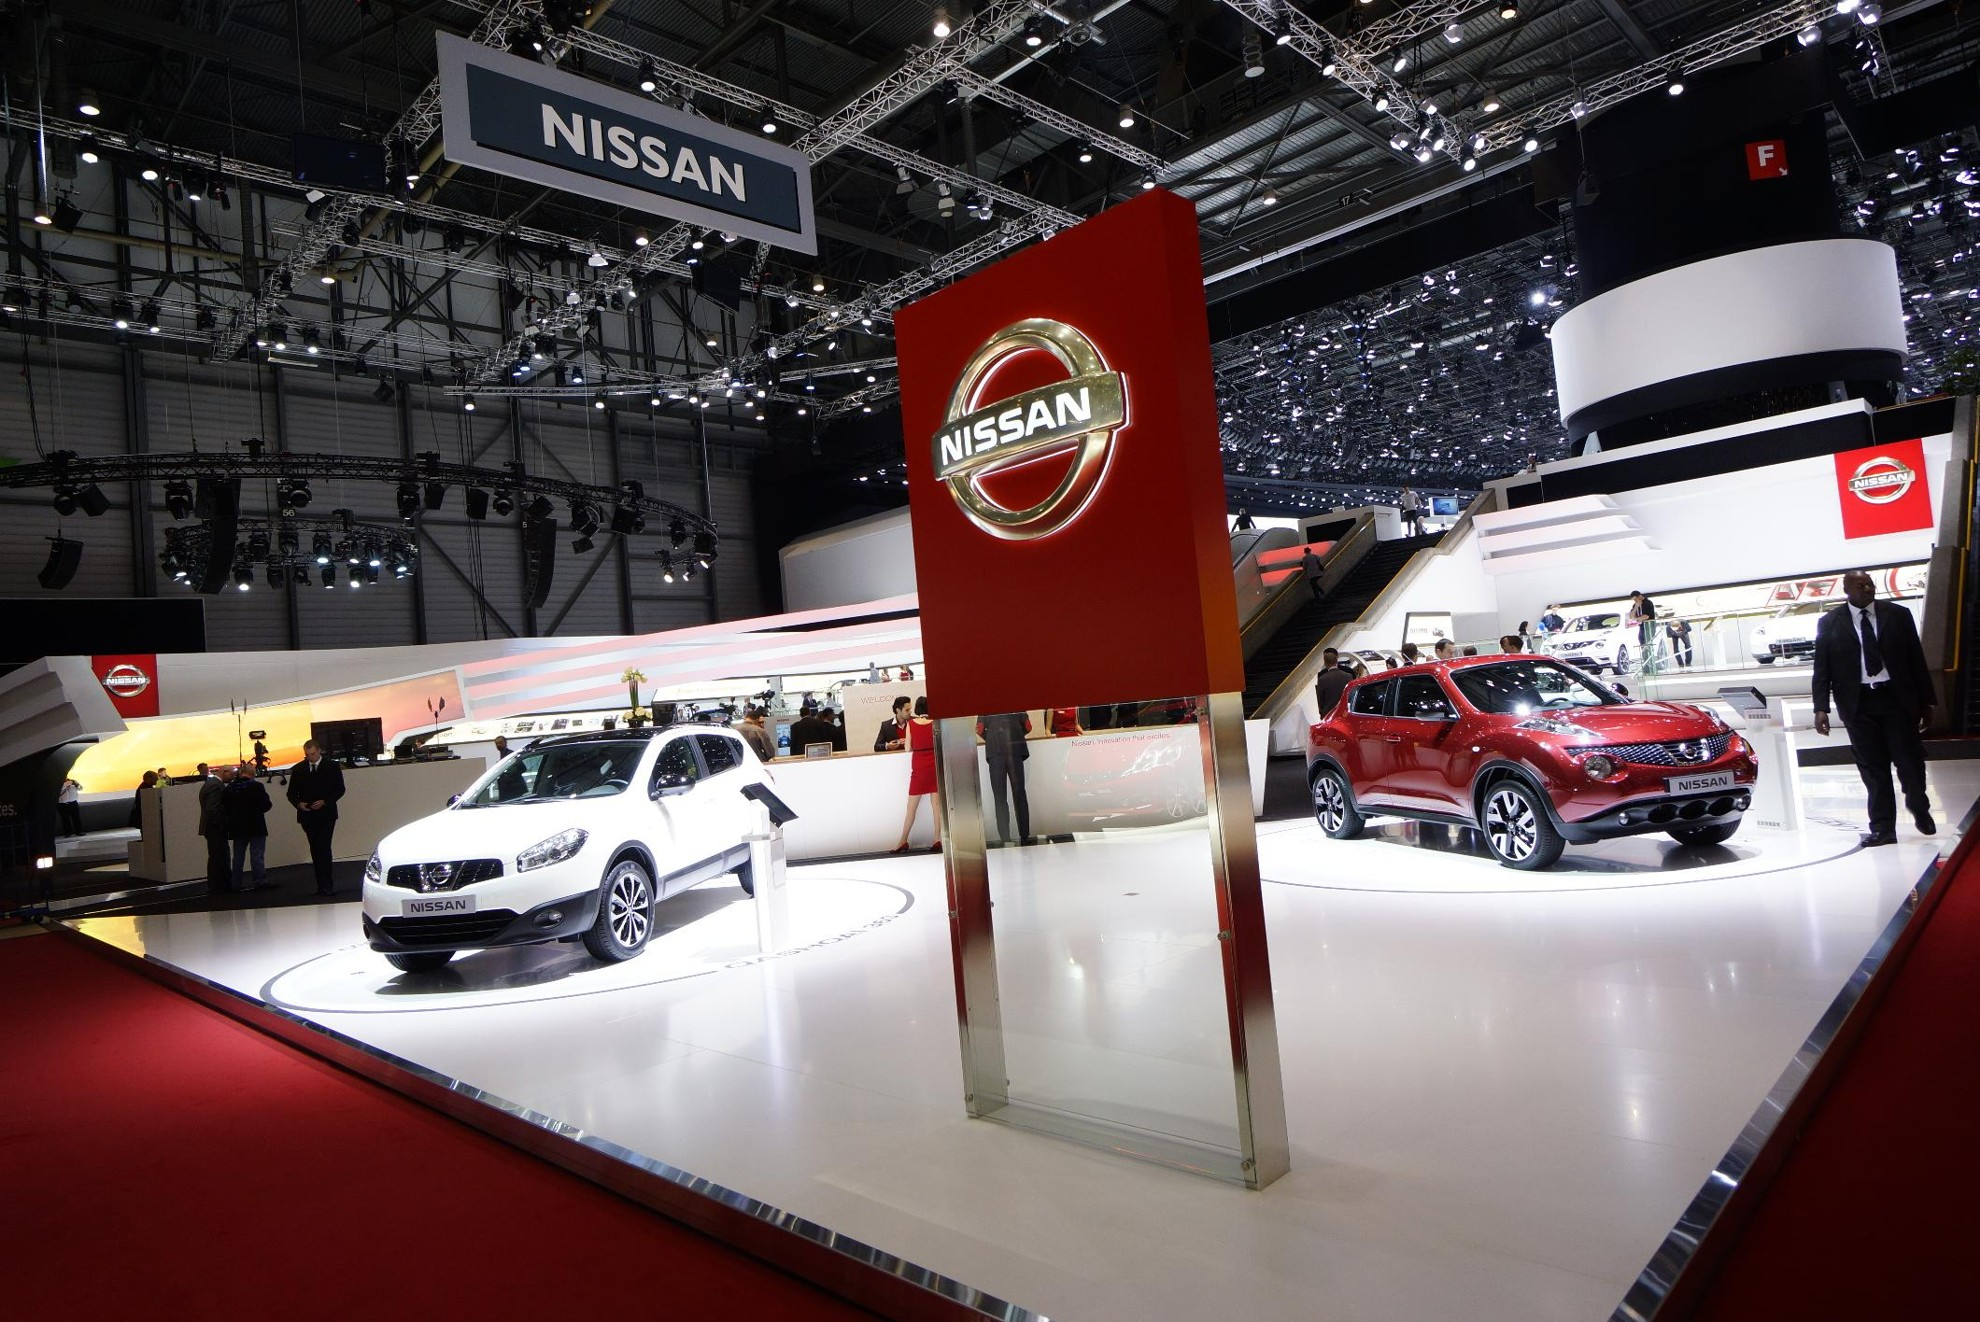 Nissan at the Geneva Motor Show